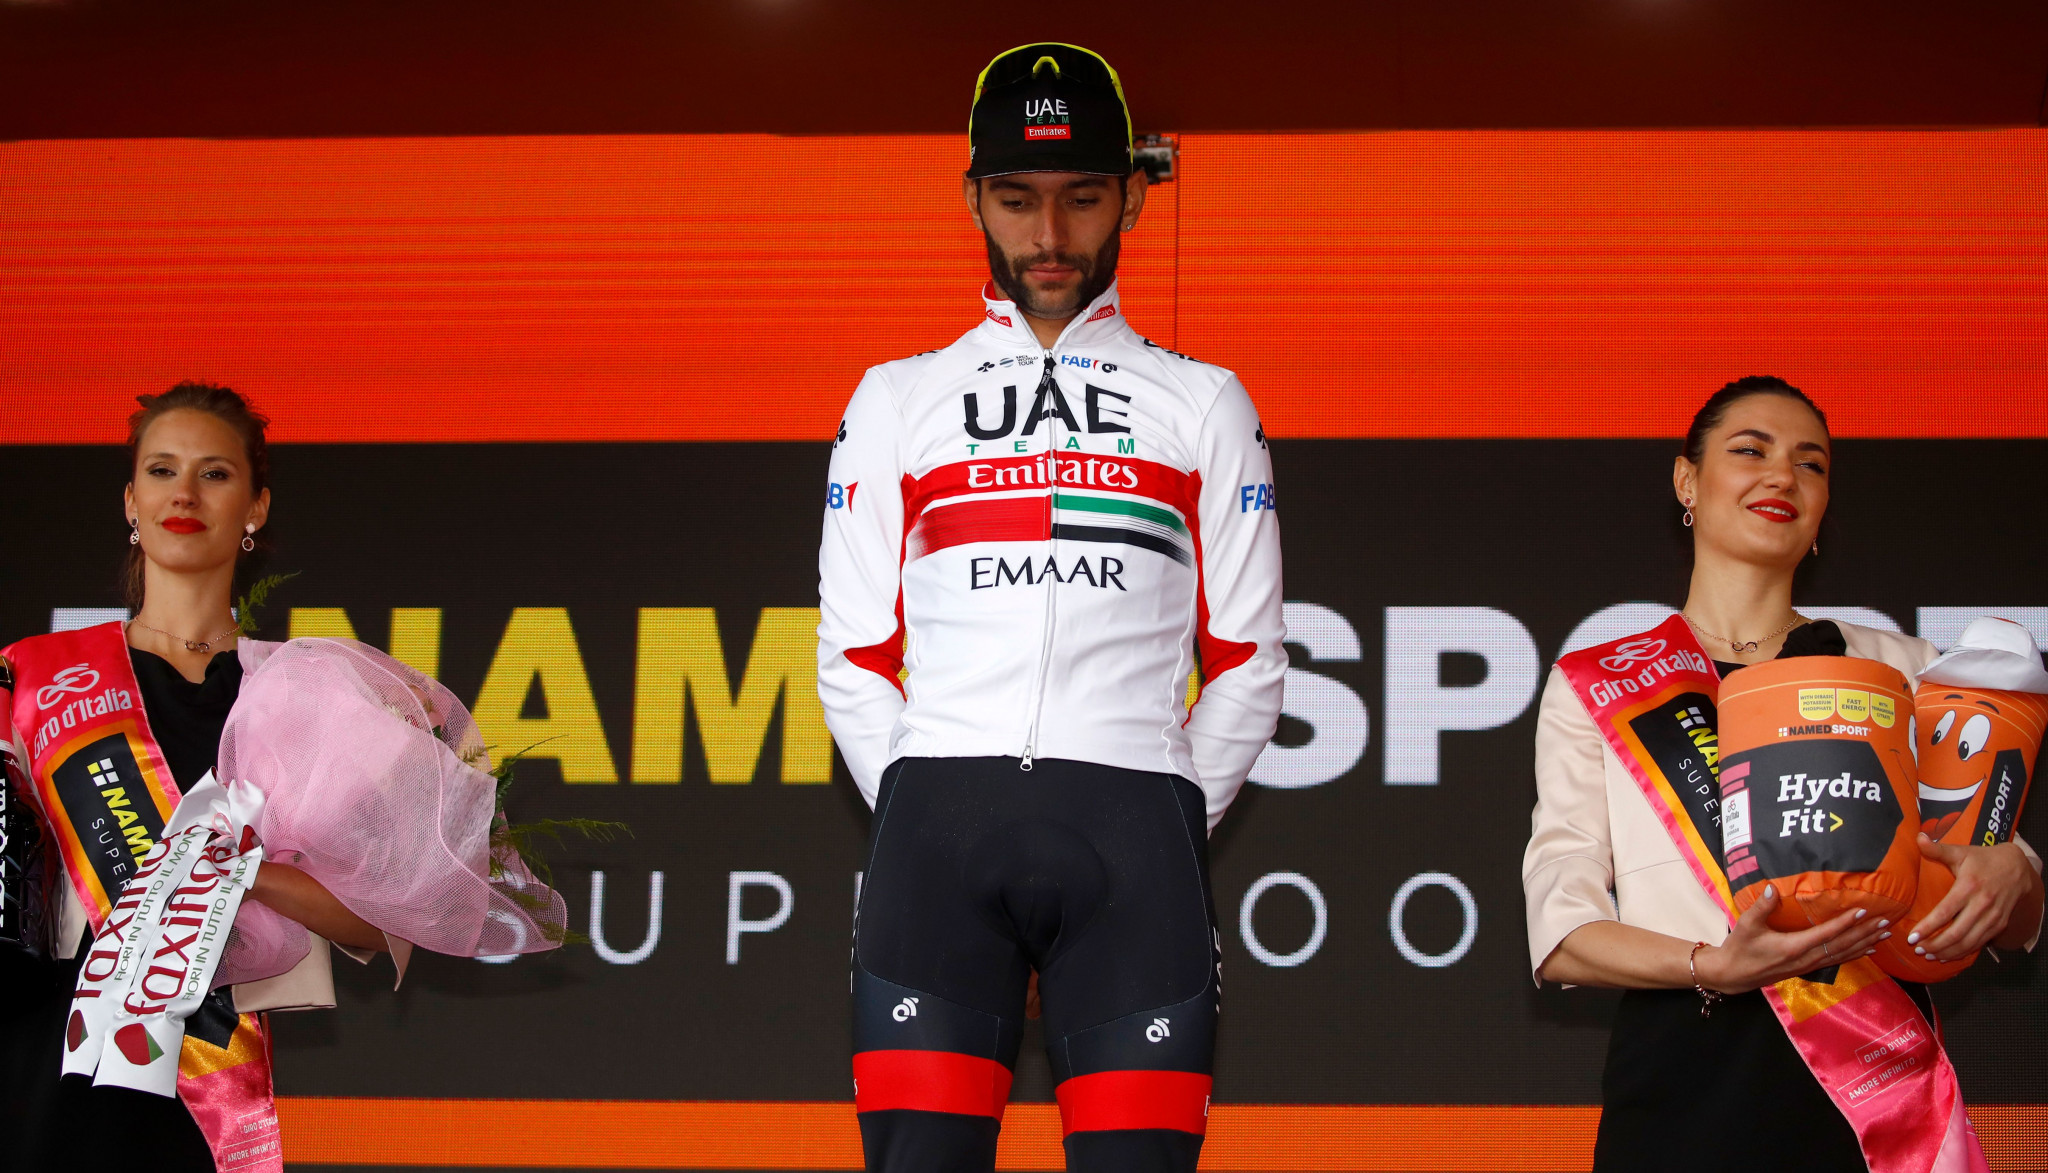 Colombia's Fernando Gaviria was awarded victory on stage three of the Giro d'Italia after home rider Elia Viviani was relegated by the jury ©Getty Images